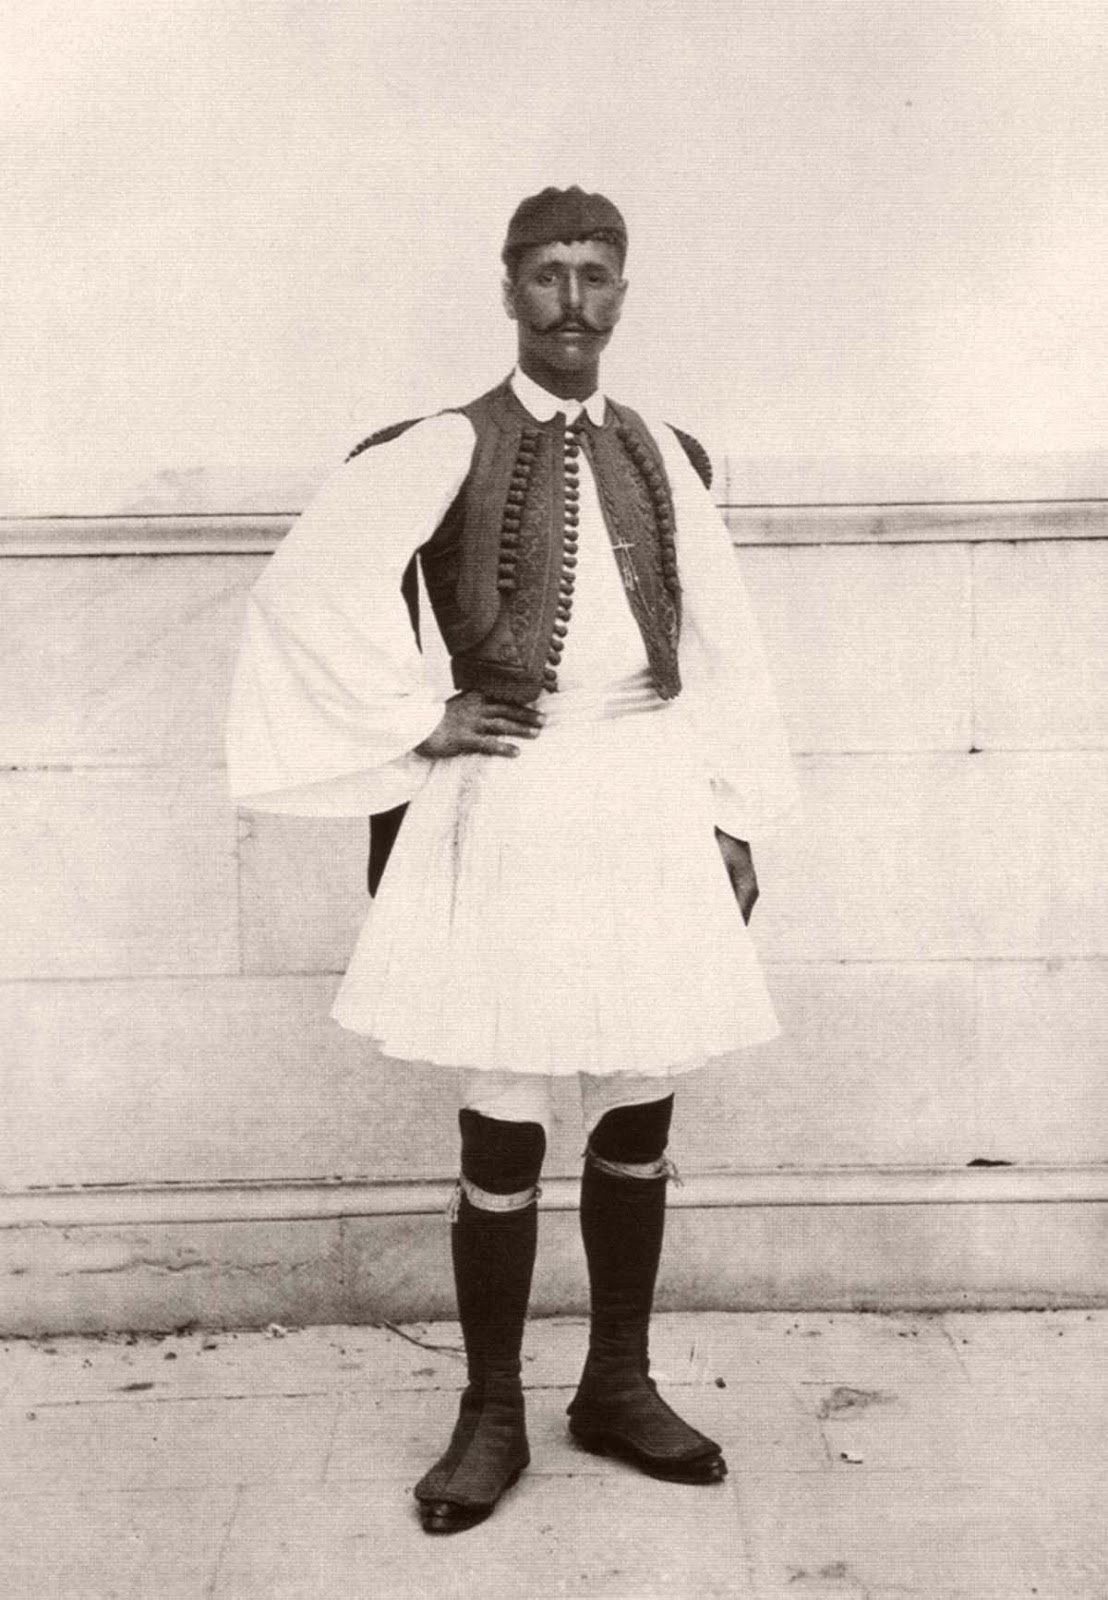 Spyridon Louis, a previously unrecognised water carrier, won the event to become the only Greek athletics champion and a national hero.